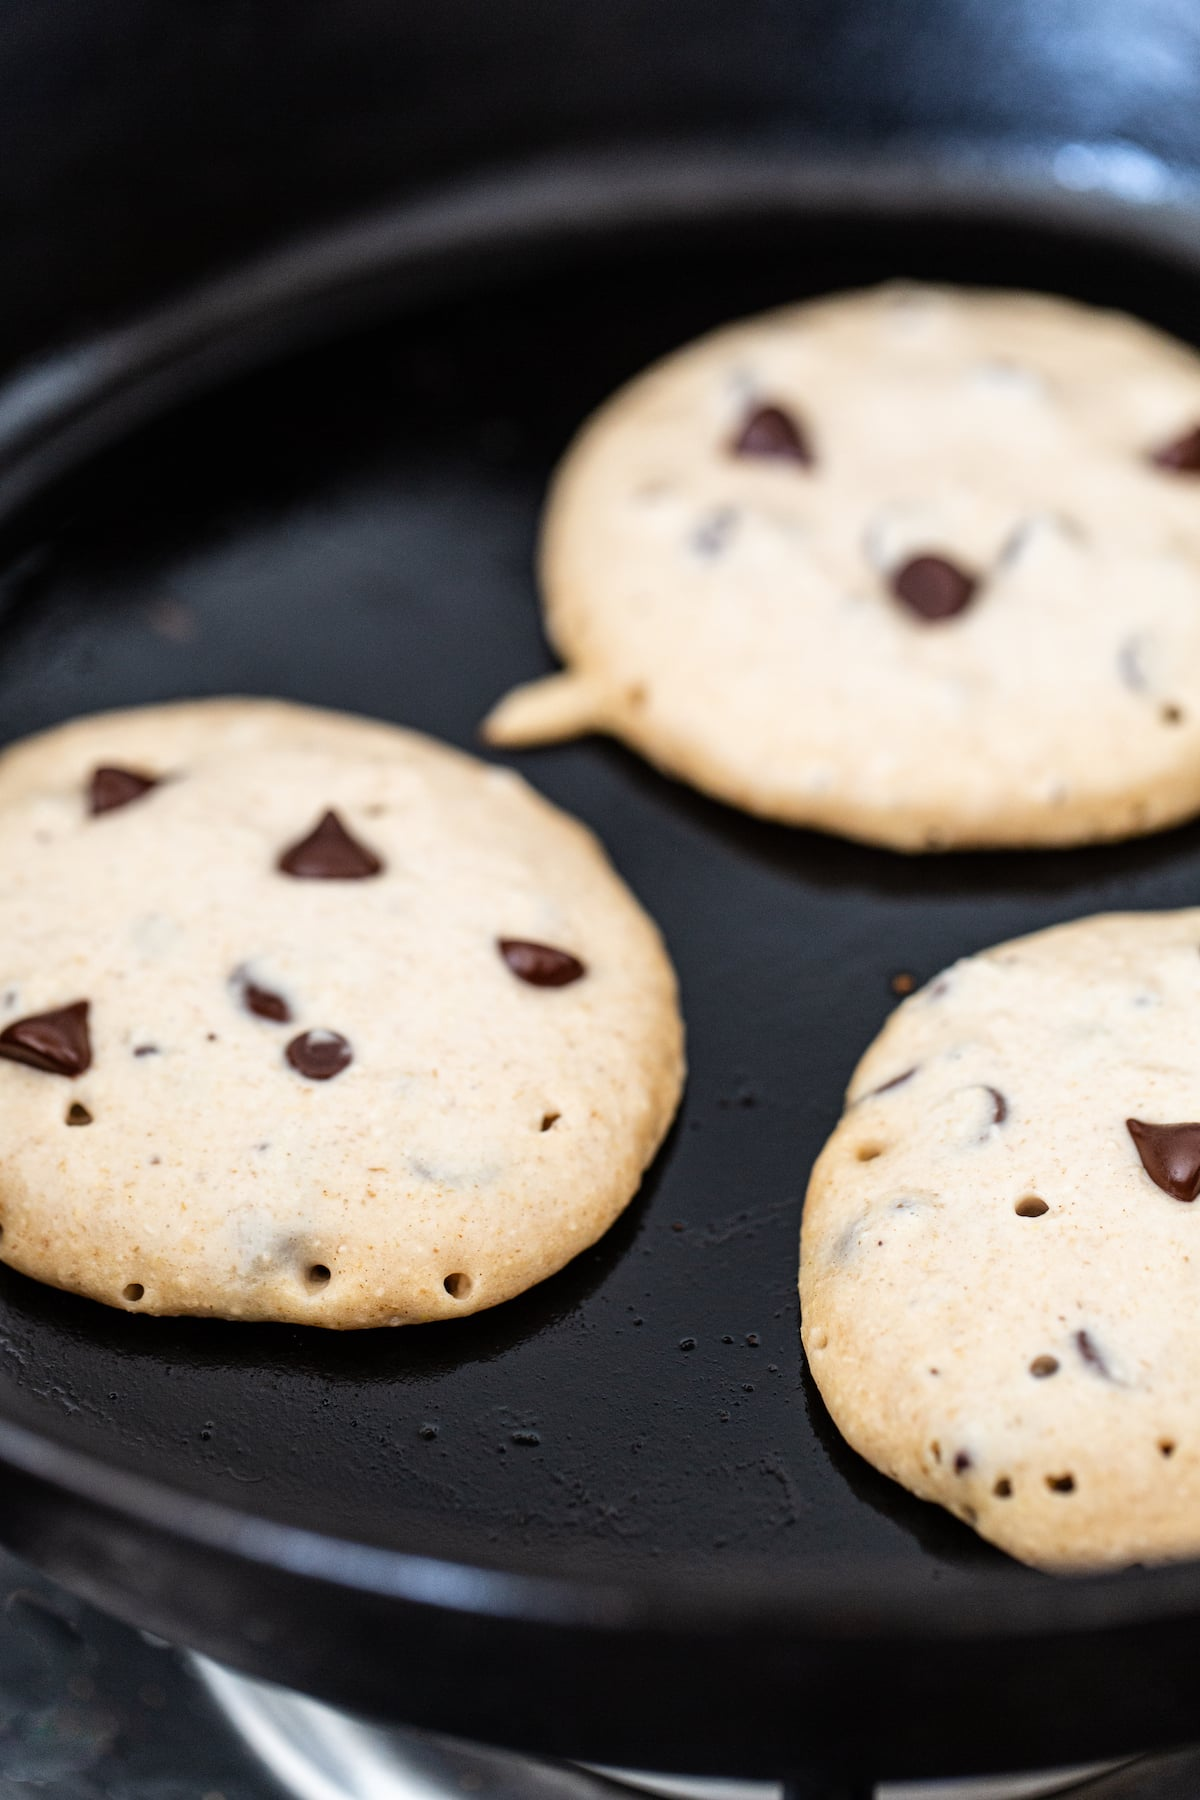 Chocolate chip pancakes in a frying pan.